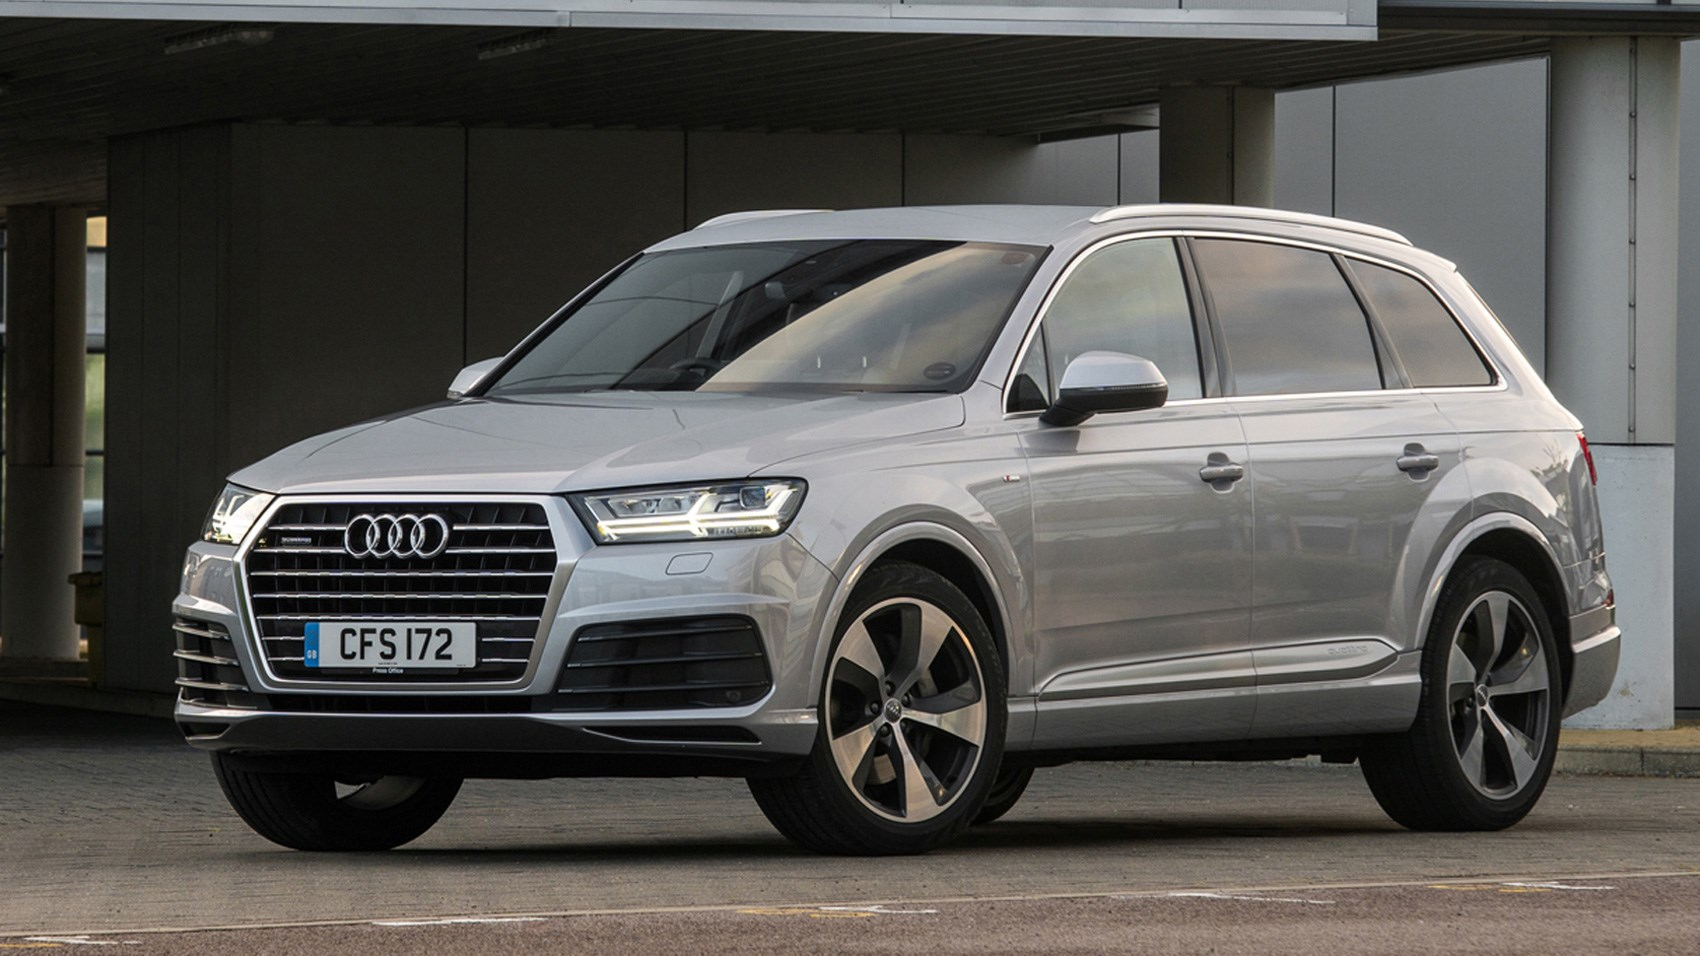 Audi Lease Deals >> Audi Q7 3.0 TDI SE (2017) review | CAR Magazine